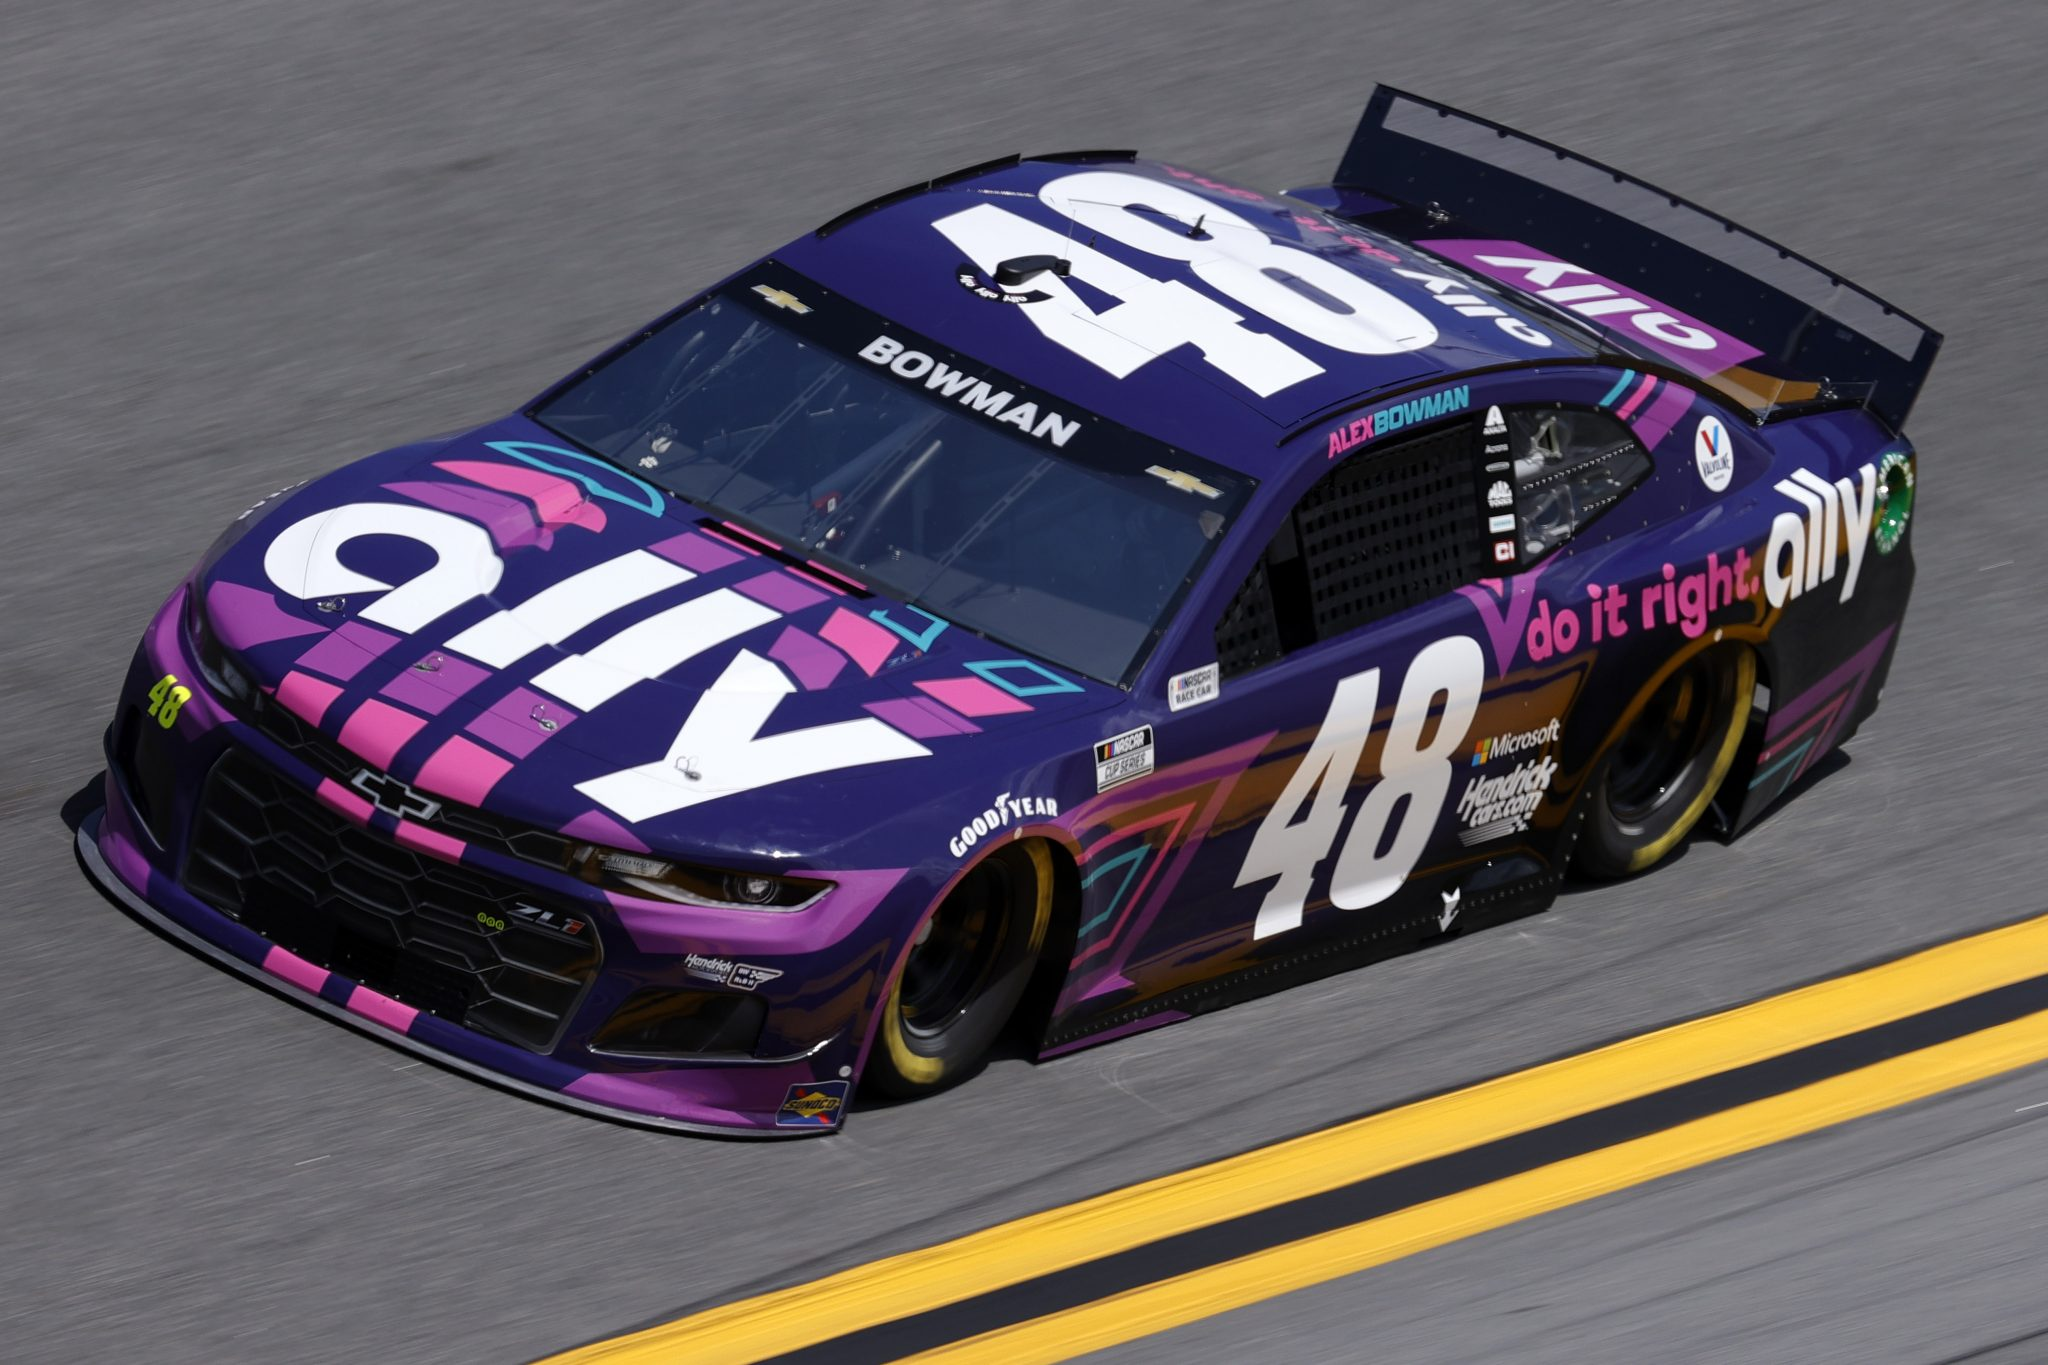 DAYTONA BEACH, FLORIDA - FEBRUARY 10: Alex Bowman, driver of the #48 Ally Chevrolet, drives during practice for the NASCAR Cup Series 63rd Annual Daytona 500 at Daytona International Speedway on February 10, 2021 in Daytona Beach, Florida. (Photo by Jared C. Tilton/Getty Images) | Getty Images